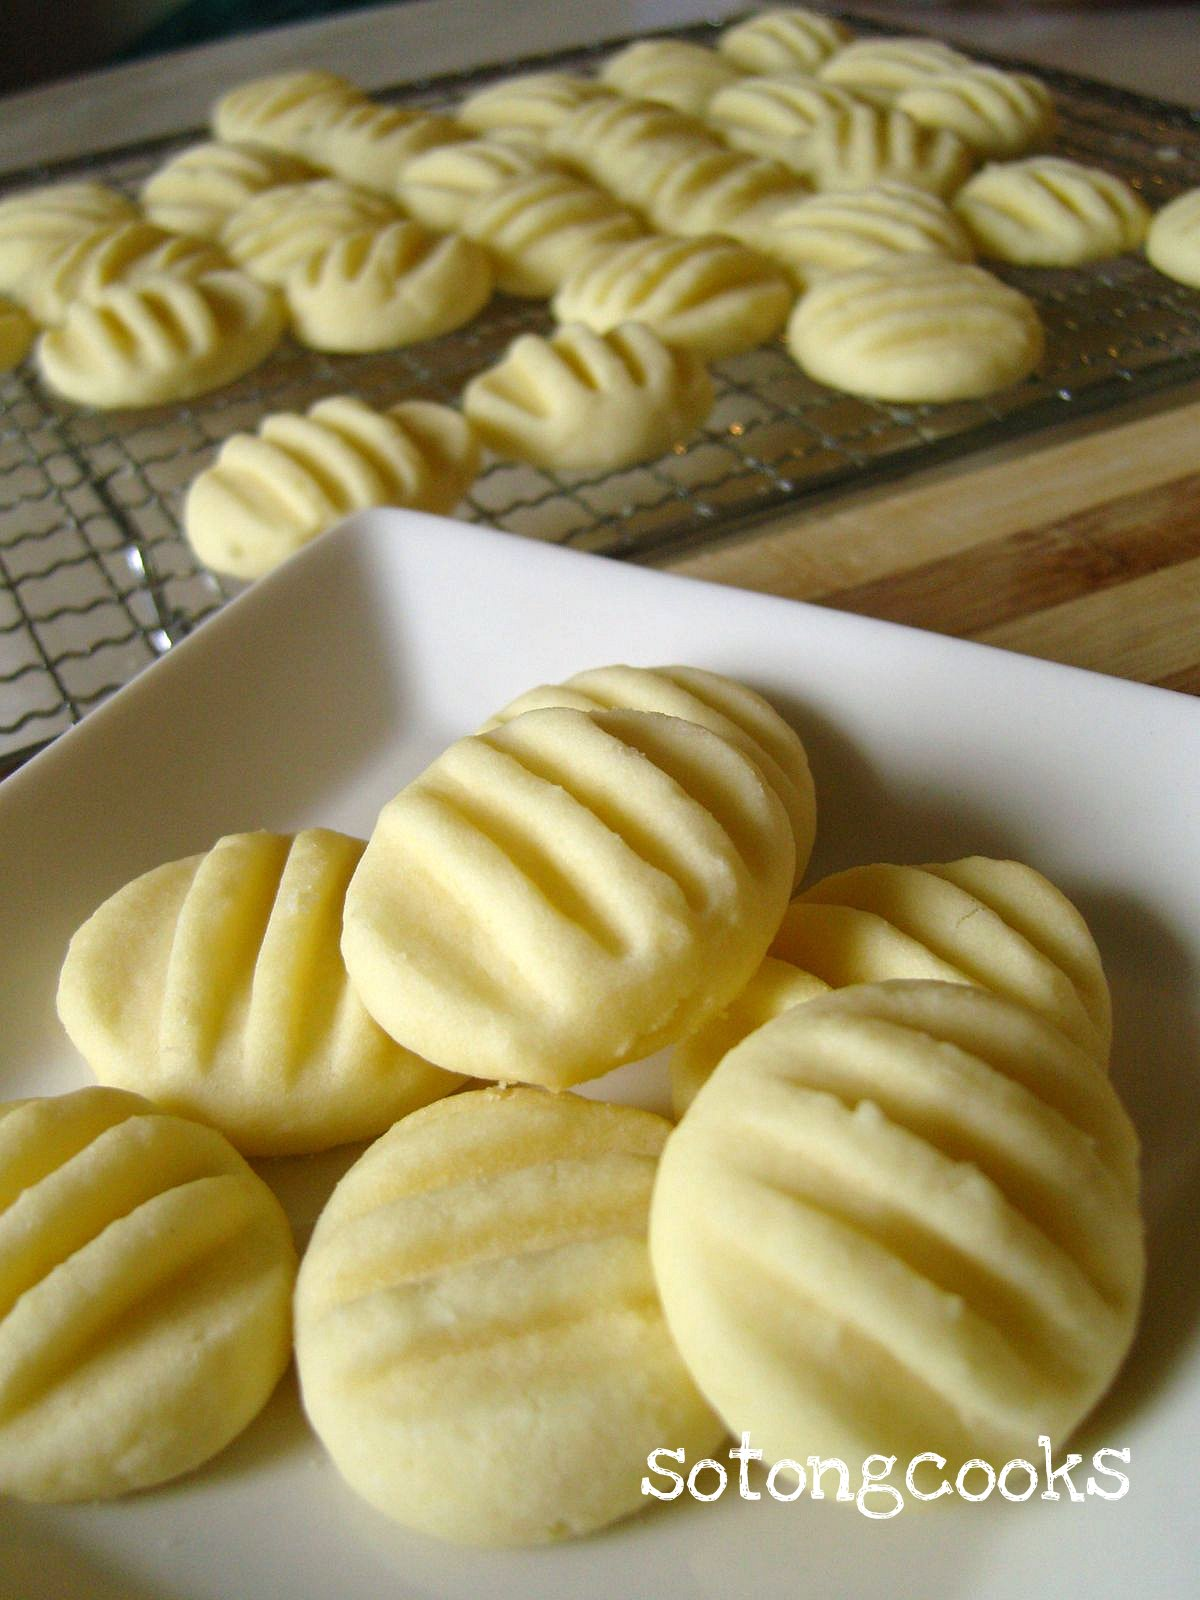 how to keep potatoes from sticking to pan when baking